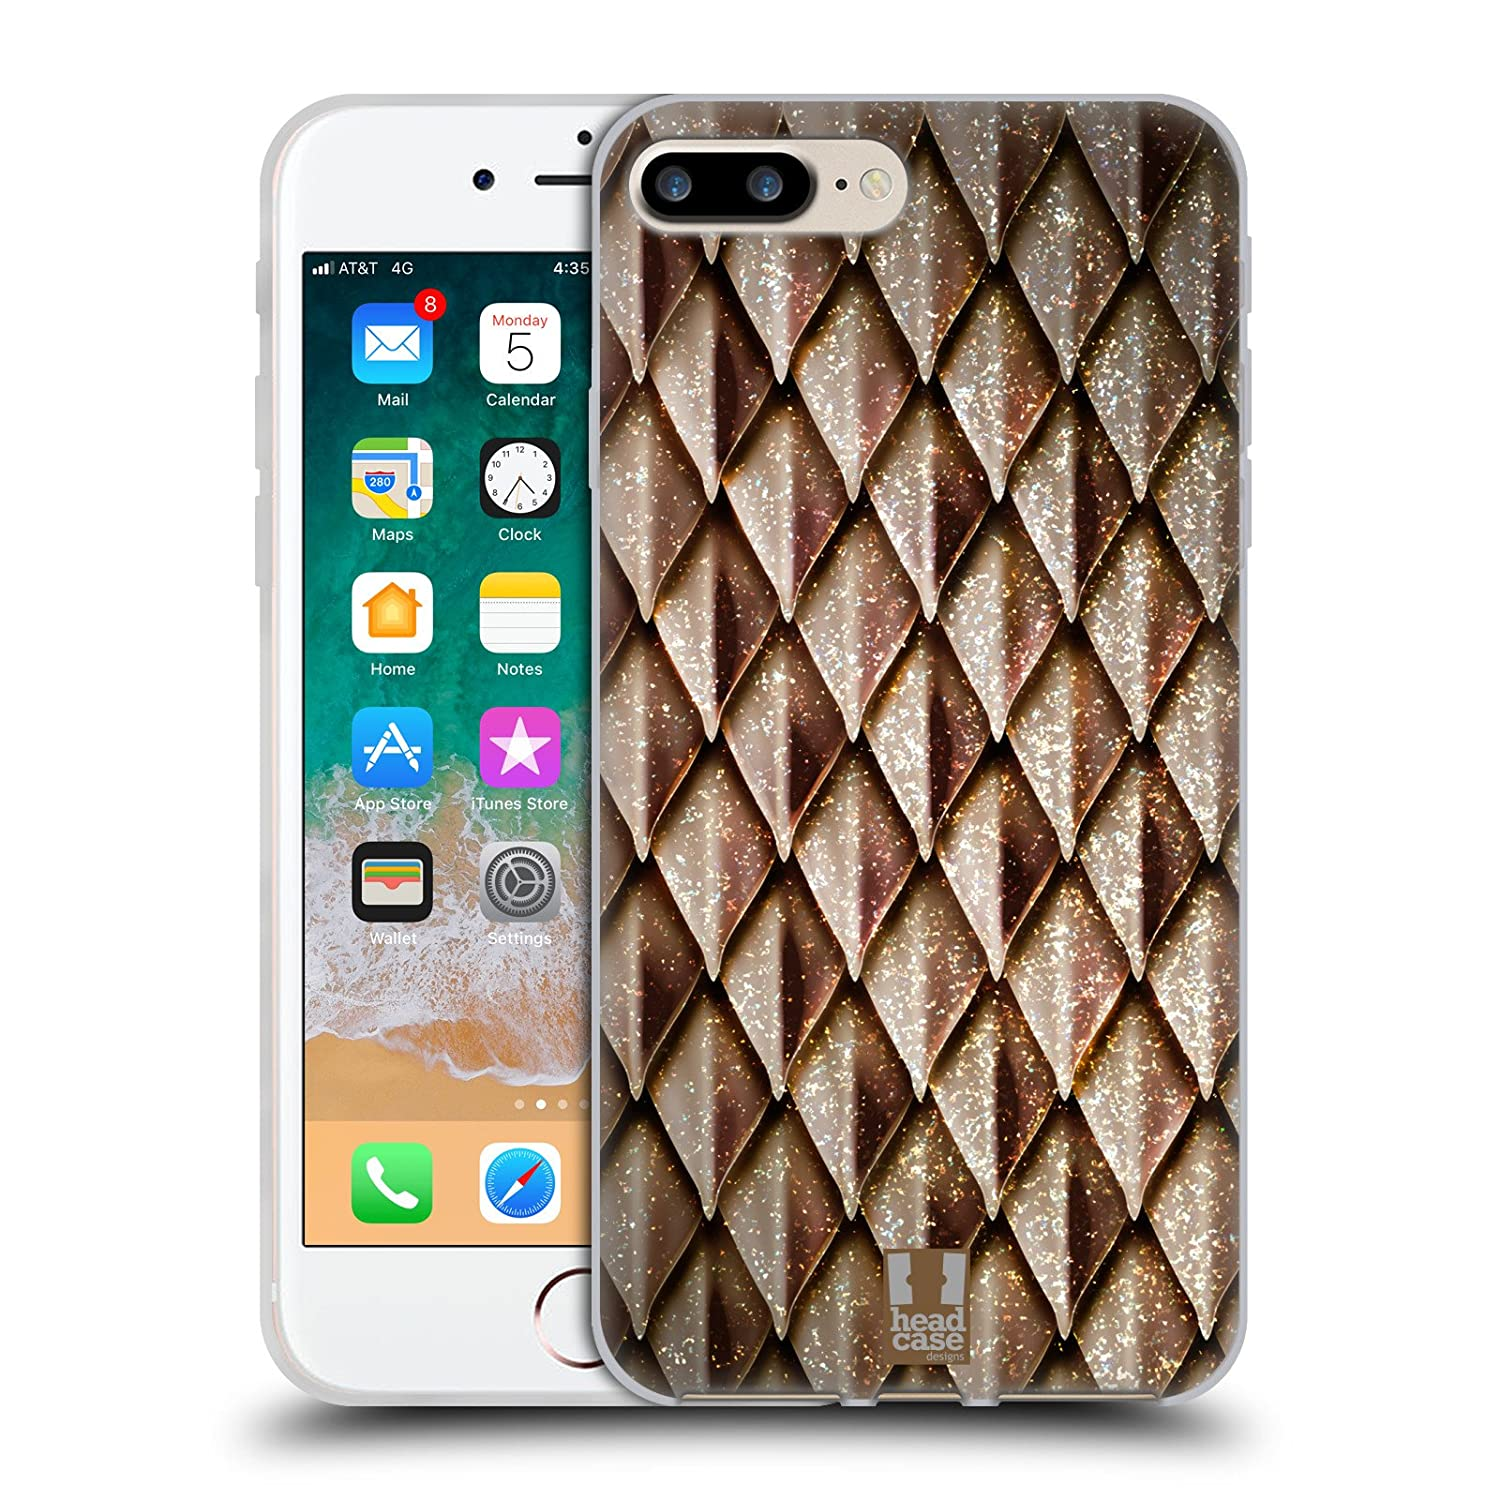 Head Case Designs Black And Red Metallic Dragon Scales Soft Gel Case Compatible for iPhone 6 Plus//iPhone 6s Plus